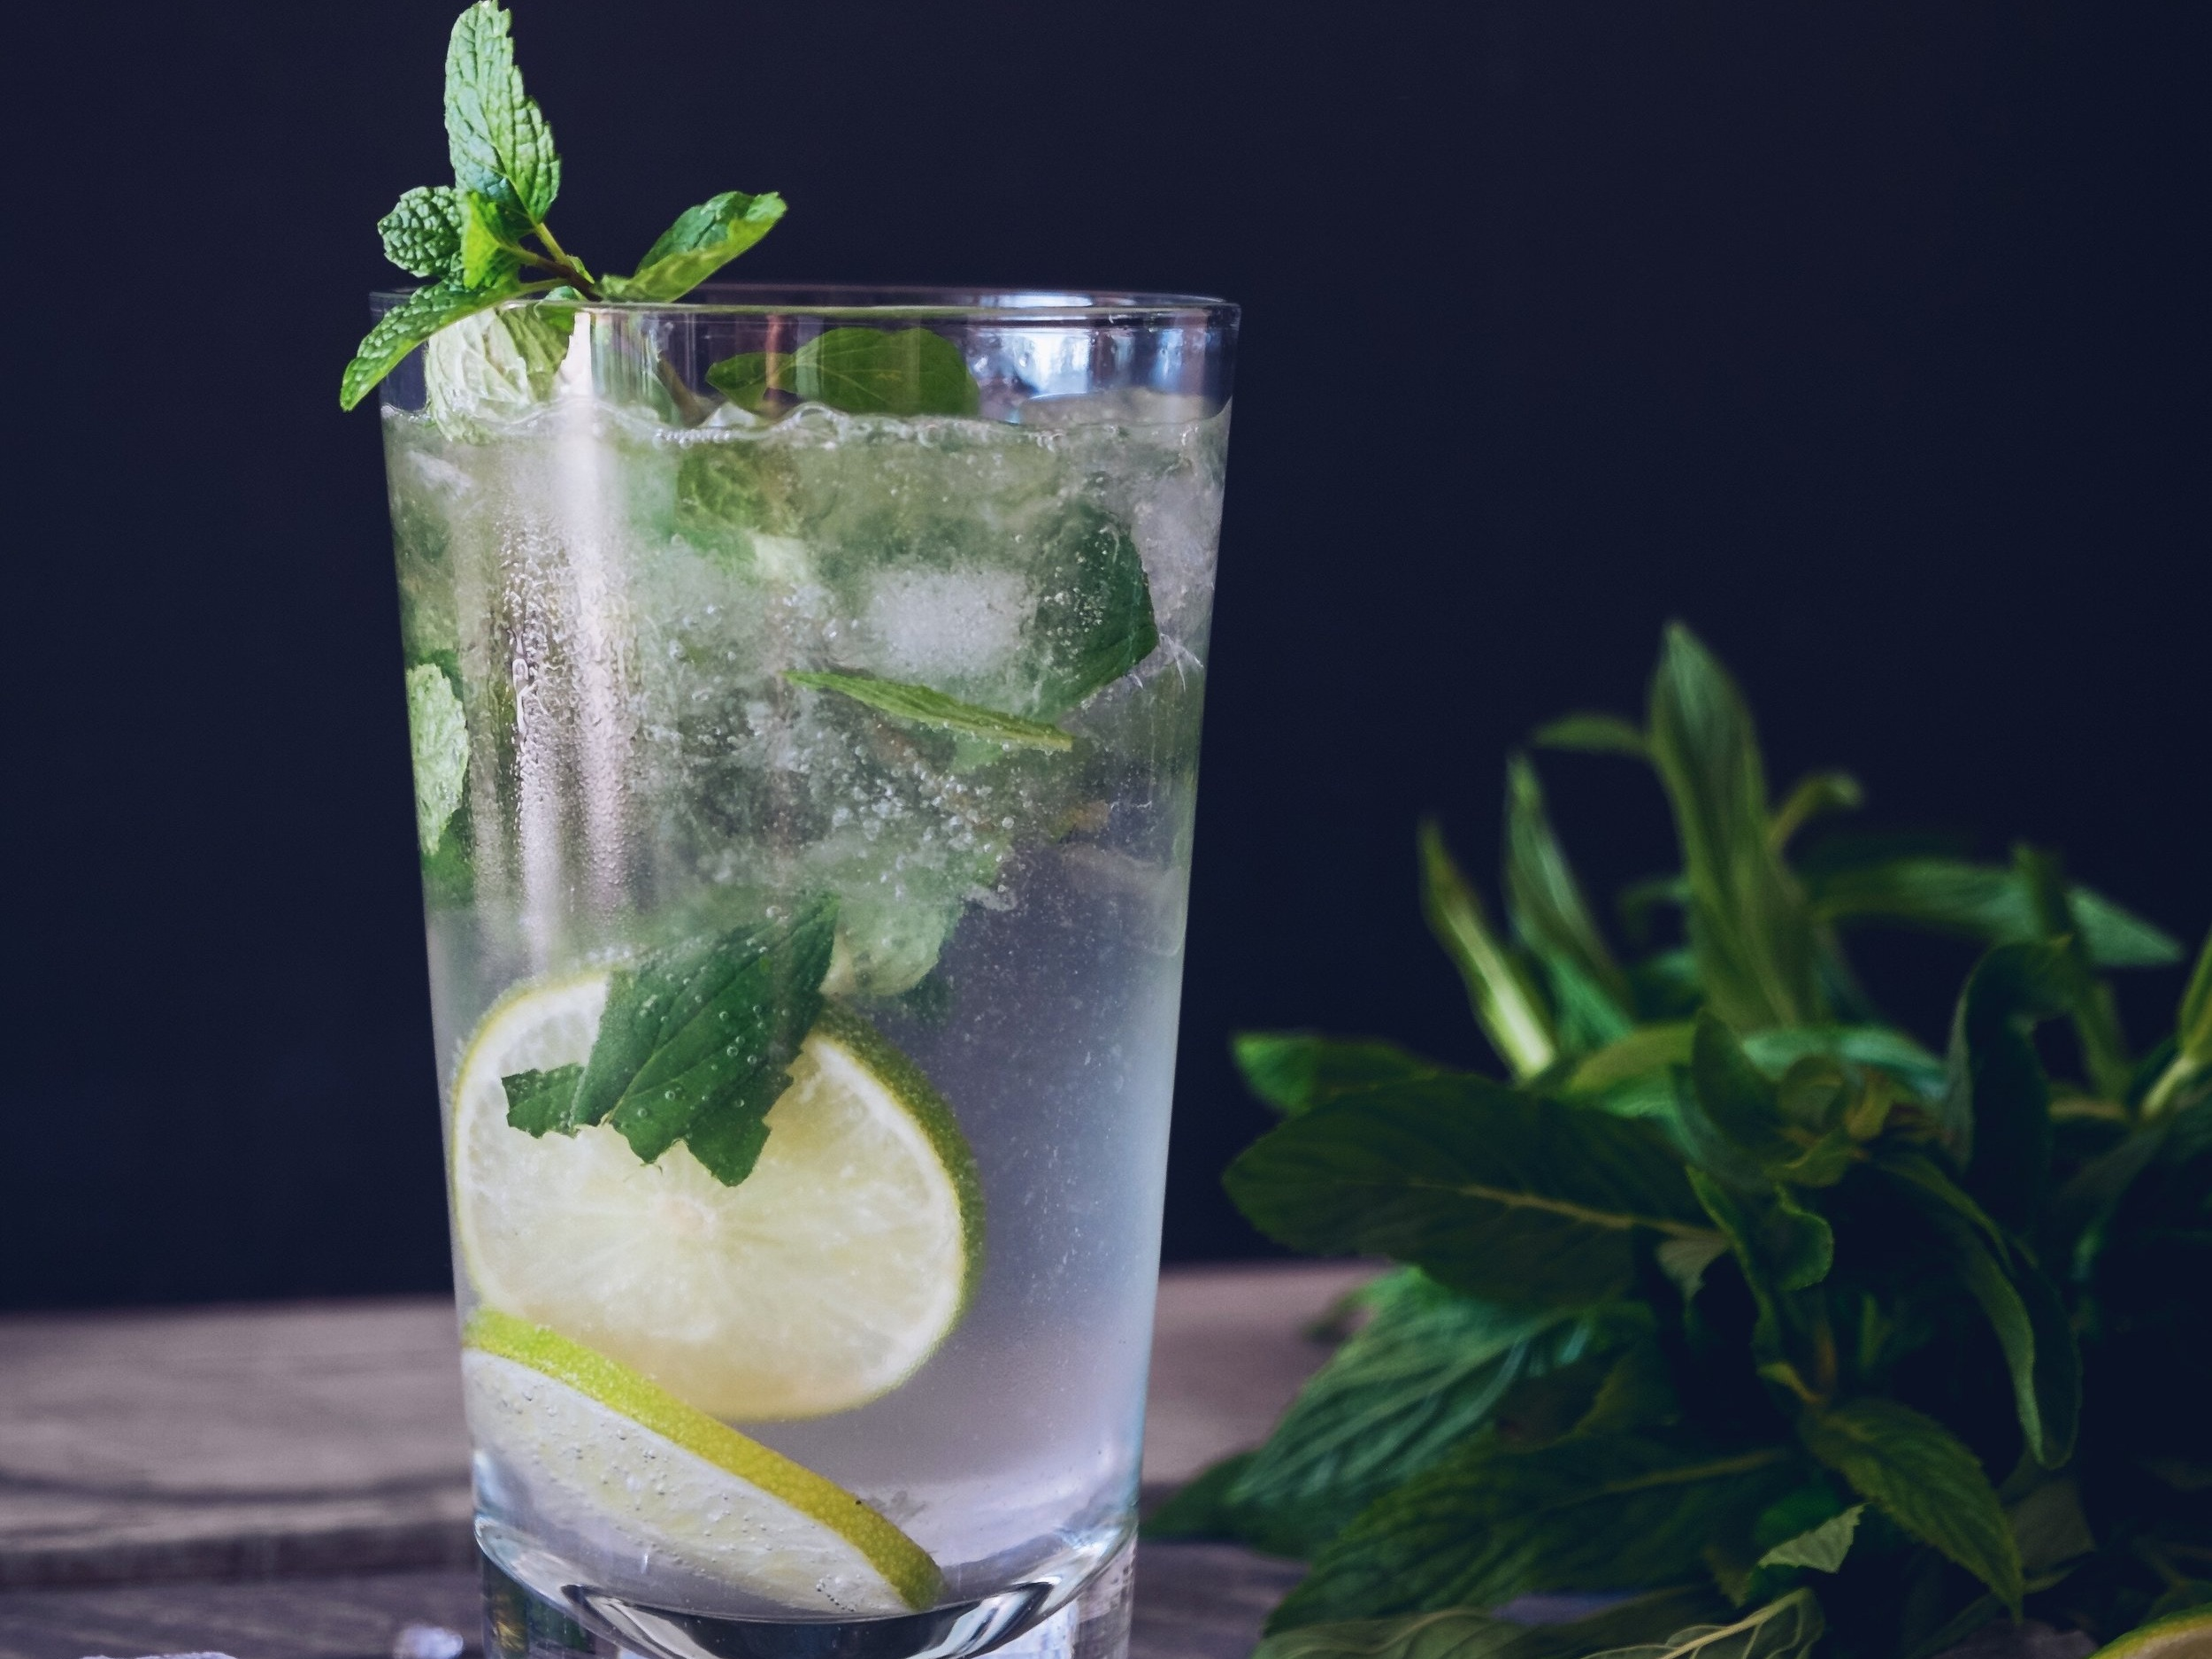 EASY & CLASSIC COCKTAILS THAT FIT ANY BRIDE'S PREFERENCE